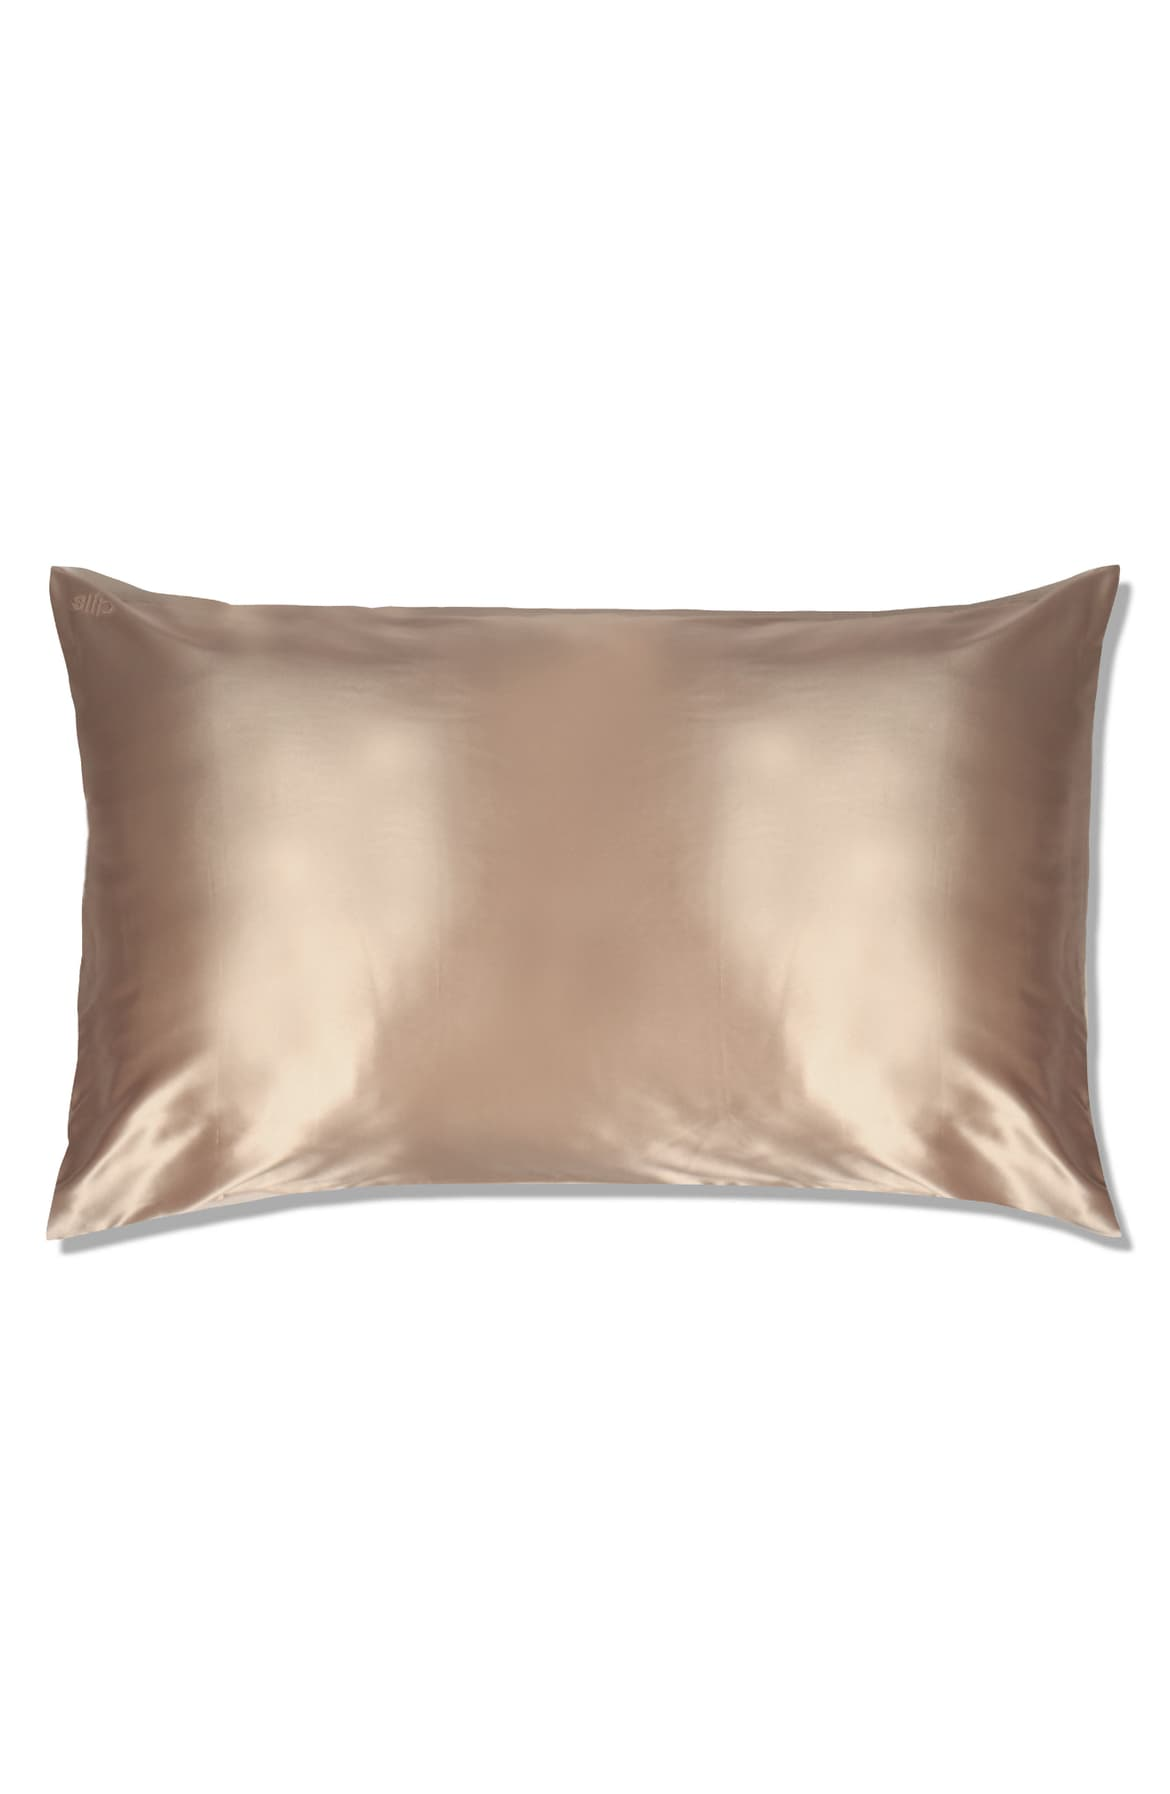 "<p>An anti-aging, anti-sleep crease, anti-bed head pillowcase that's like an eight-hour beauty treatment every night.{&nbsp;} Starts at $85.{&nbsp;}<a  href=""https://shop.nordstrom.com/s/slip-for-beauty-sleep-slipsilk-pure-silk-pillowcase/4186794/full?origin=category-personalizedsort&breadcrumb=Home%2FHoliday%20Gifts%2FGifts%20for%20Her&color=caramel"" target=""_blank"" title=""https://shop.nordstrom.com/s/slip-for-beauty-sleep-slipsilk-pure-silk-pillowcase/4186794/full?origin=category-personalizedsort&breadcrumb=Home%2FHoliday%20Gifts%2FGifts%20for%20Her&color=caramel"">Shop it{&nbsp;}</a>(Image: Nordstrom){&nbsp;}</p>"